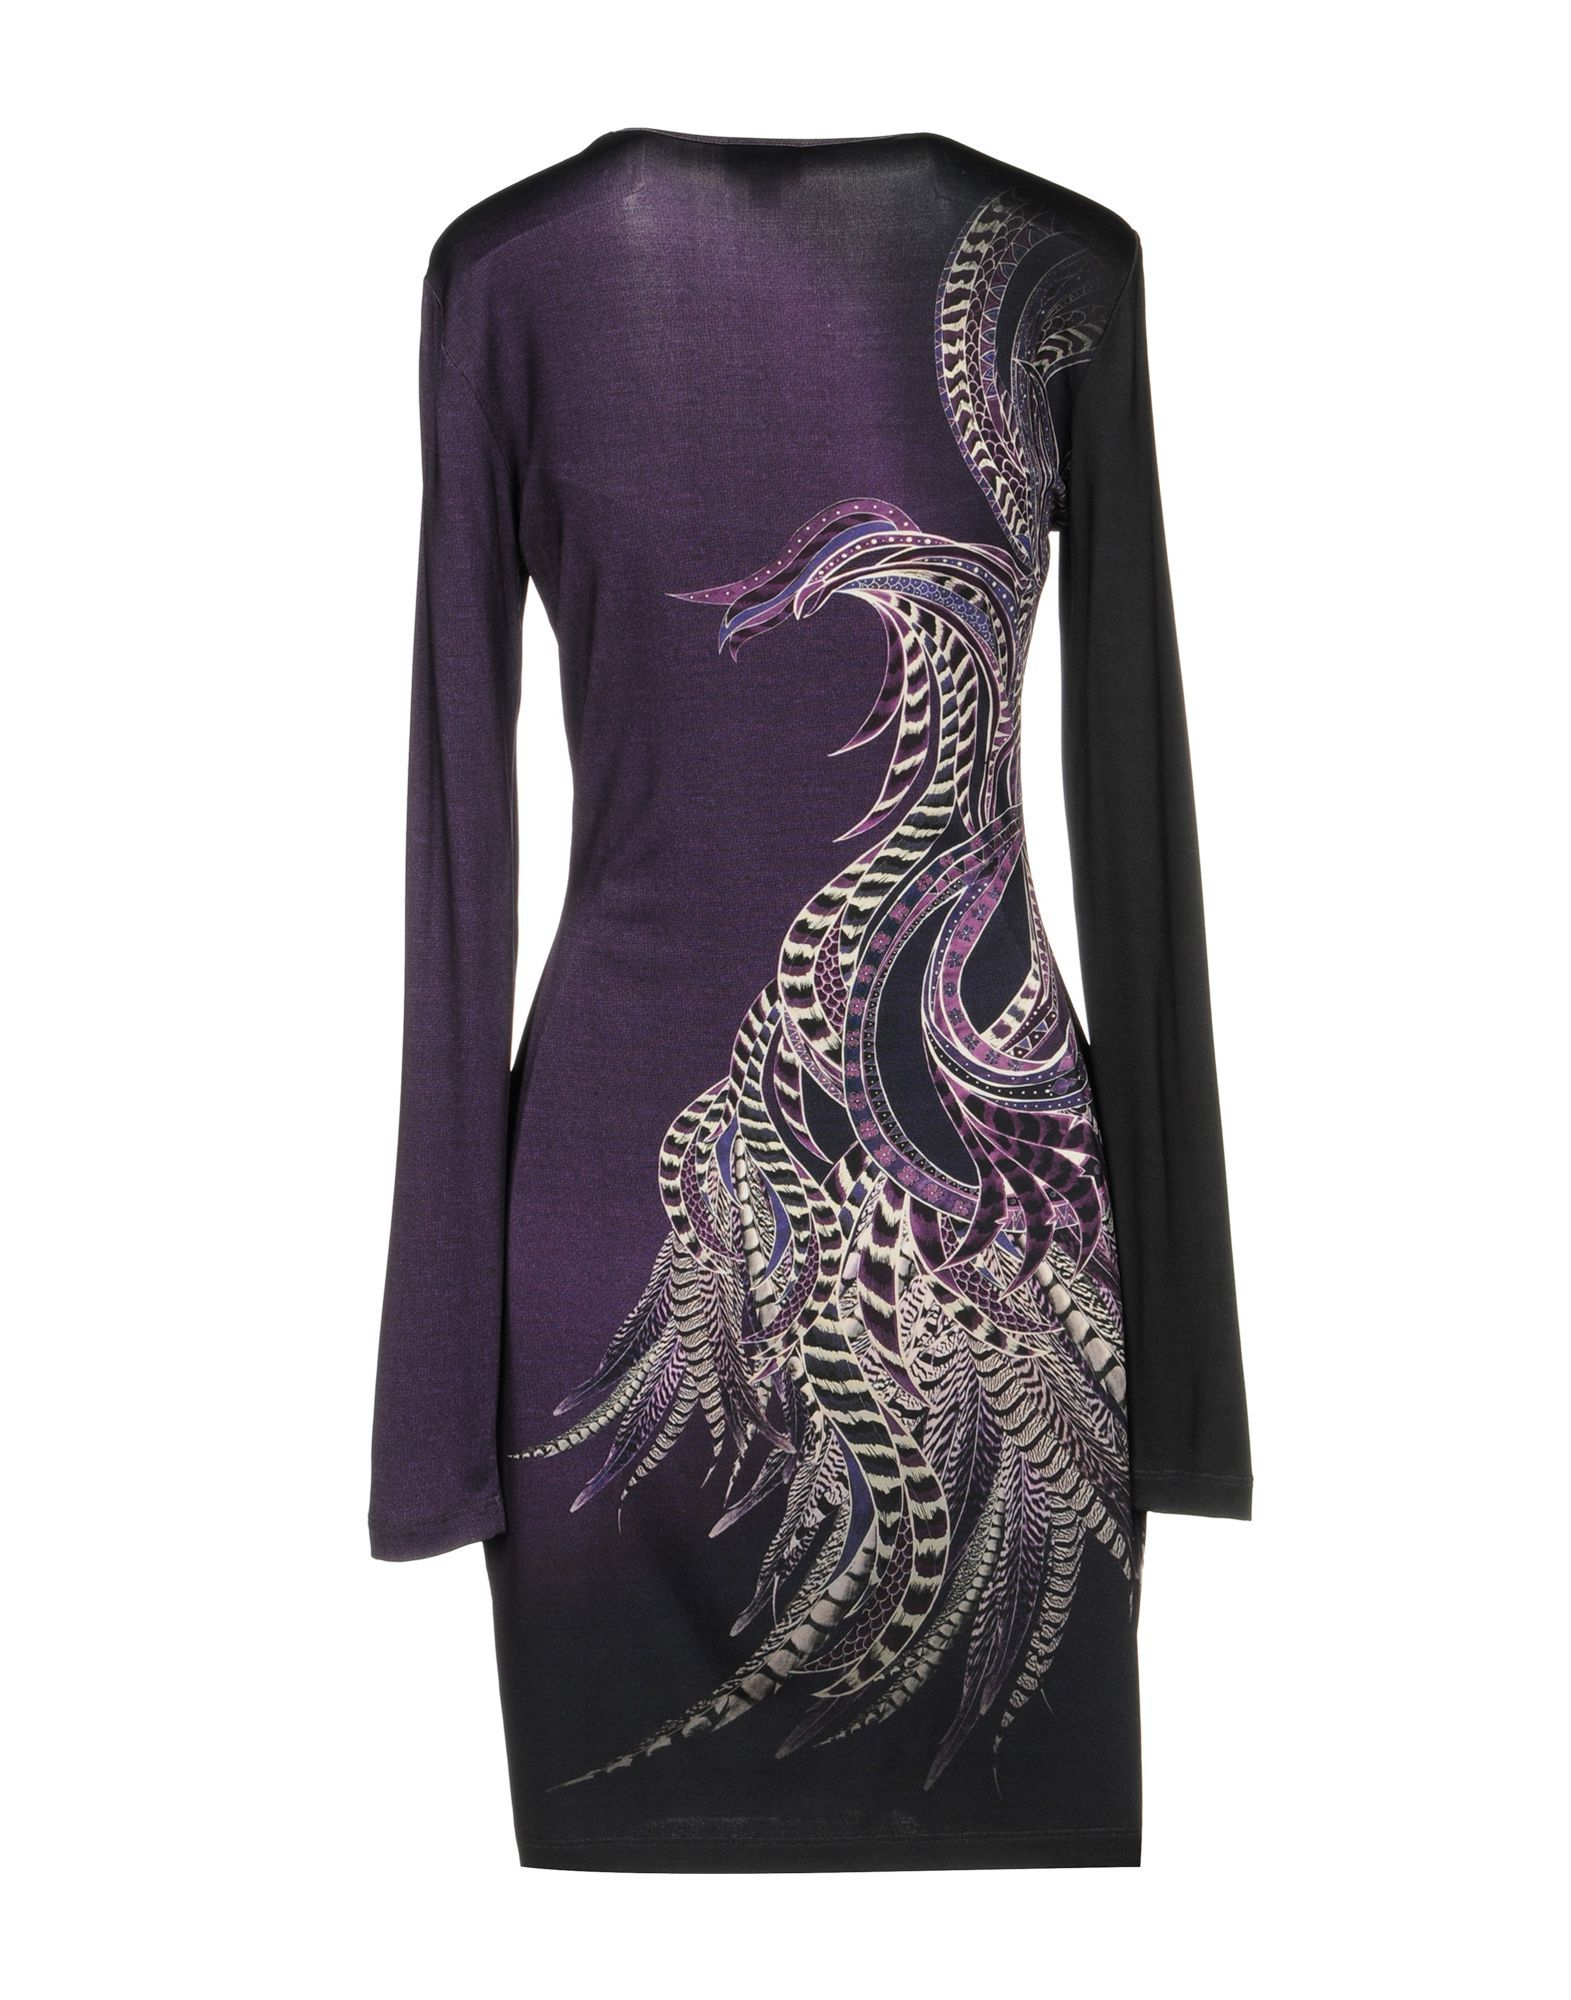 Just Cavalli Dark Purple Long Sleeve Dress